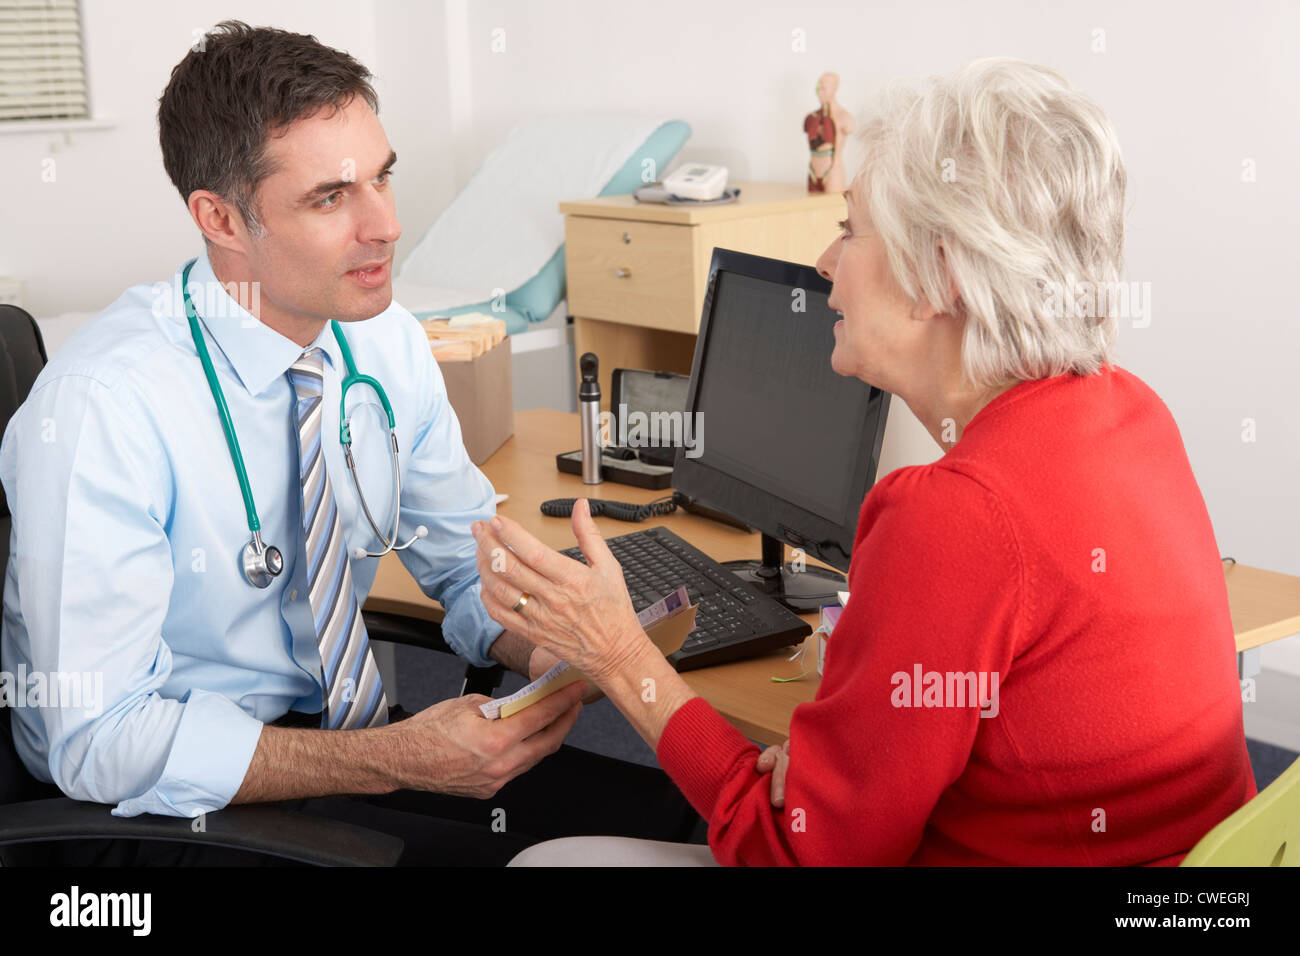 British GP talking to senior woman in surgery - Stock Image